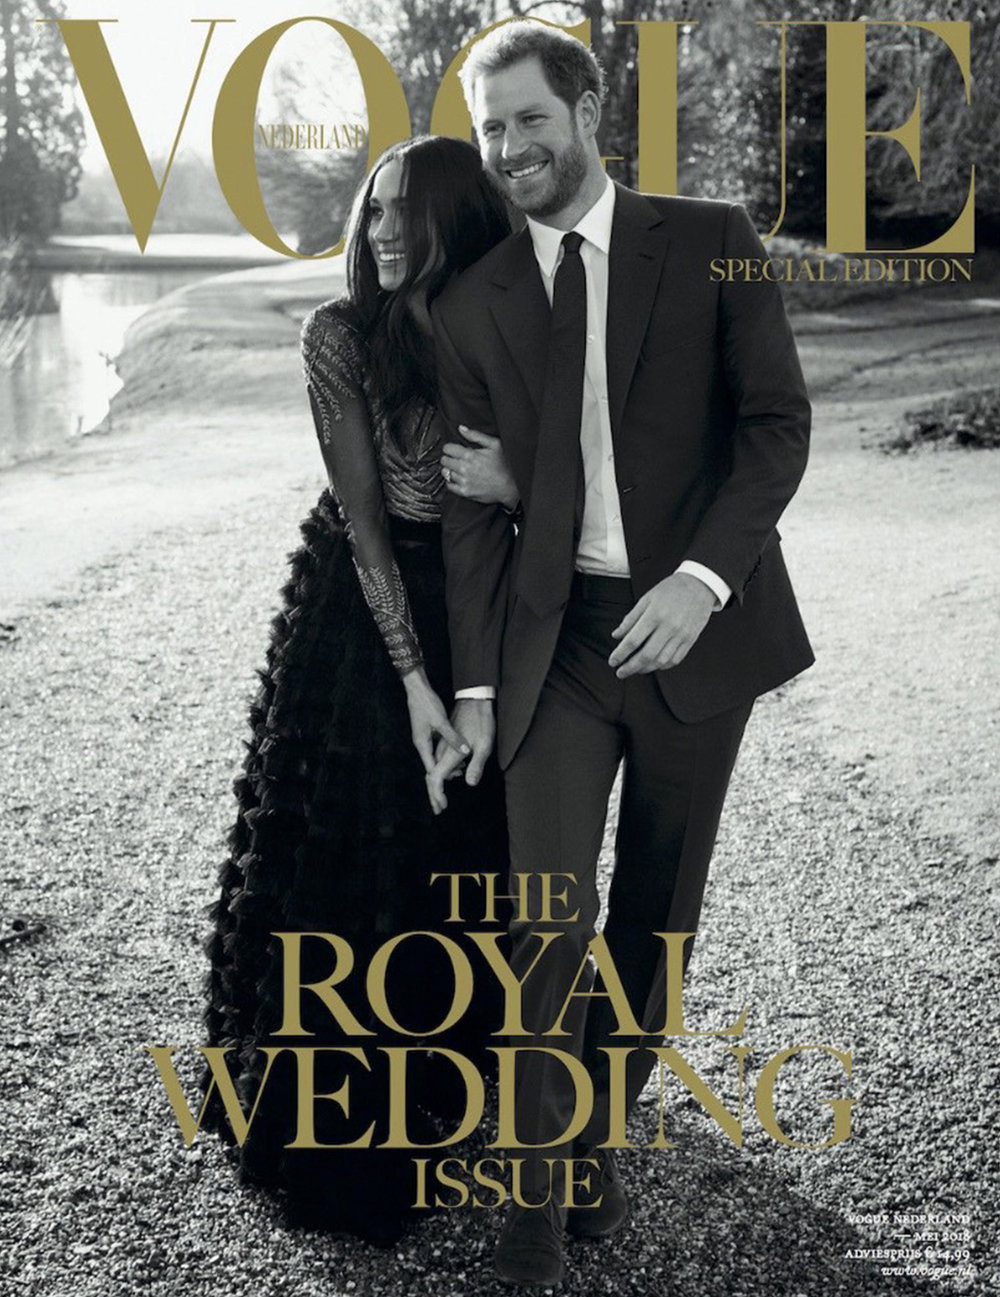 Vogue The Royal Wedding Issue - May Issue 2018 -